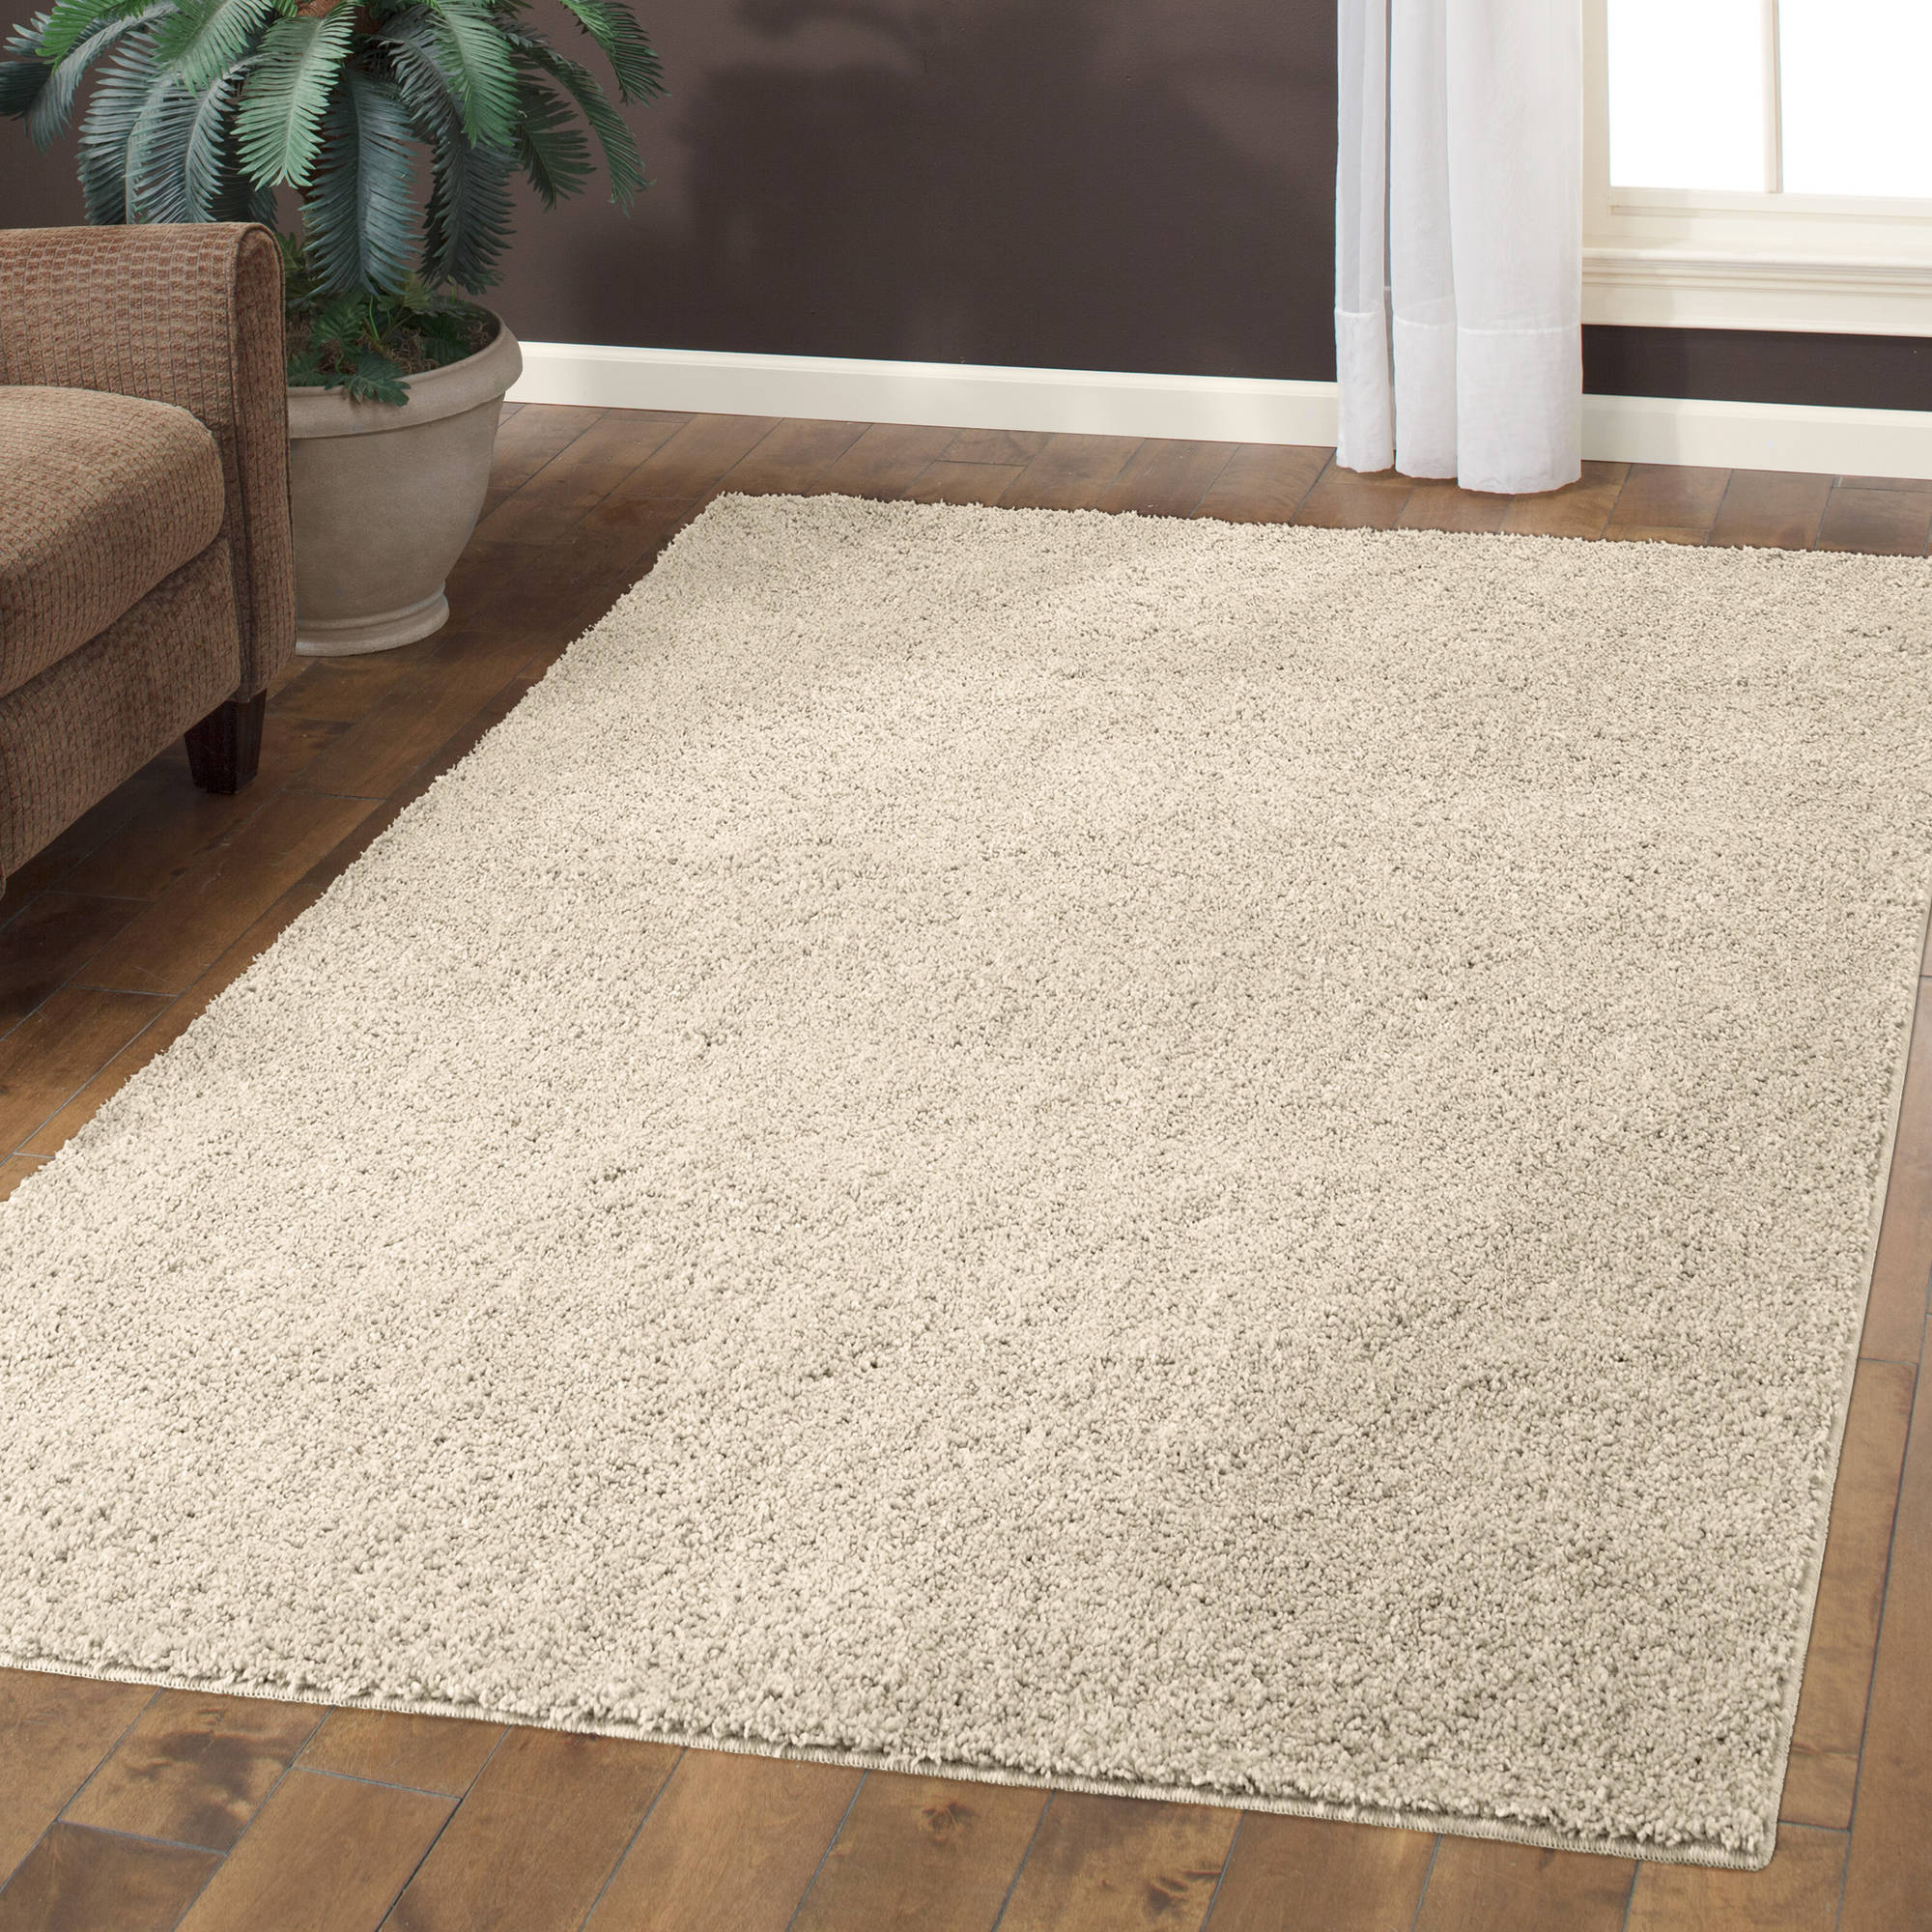 Mainstays Manchester Shag Area Rug or Runner